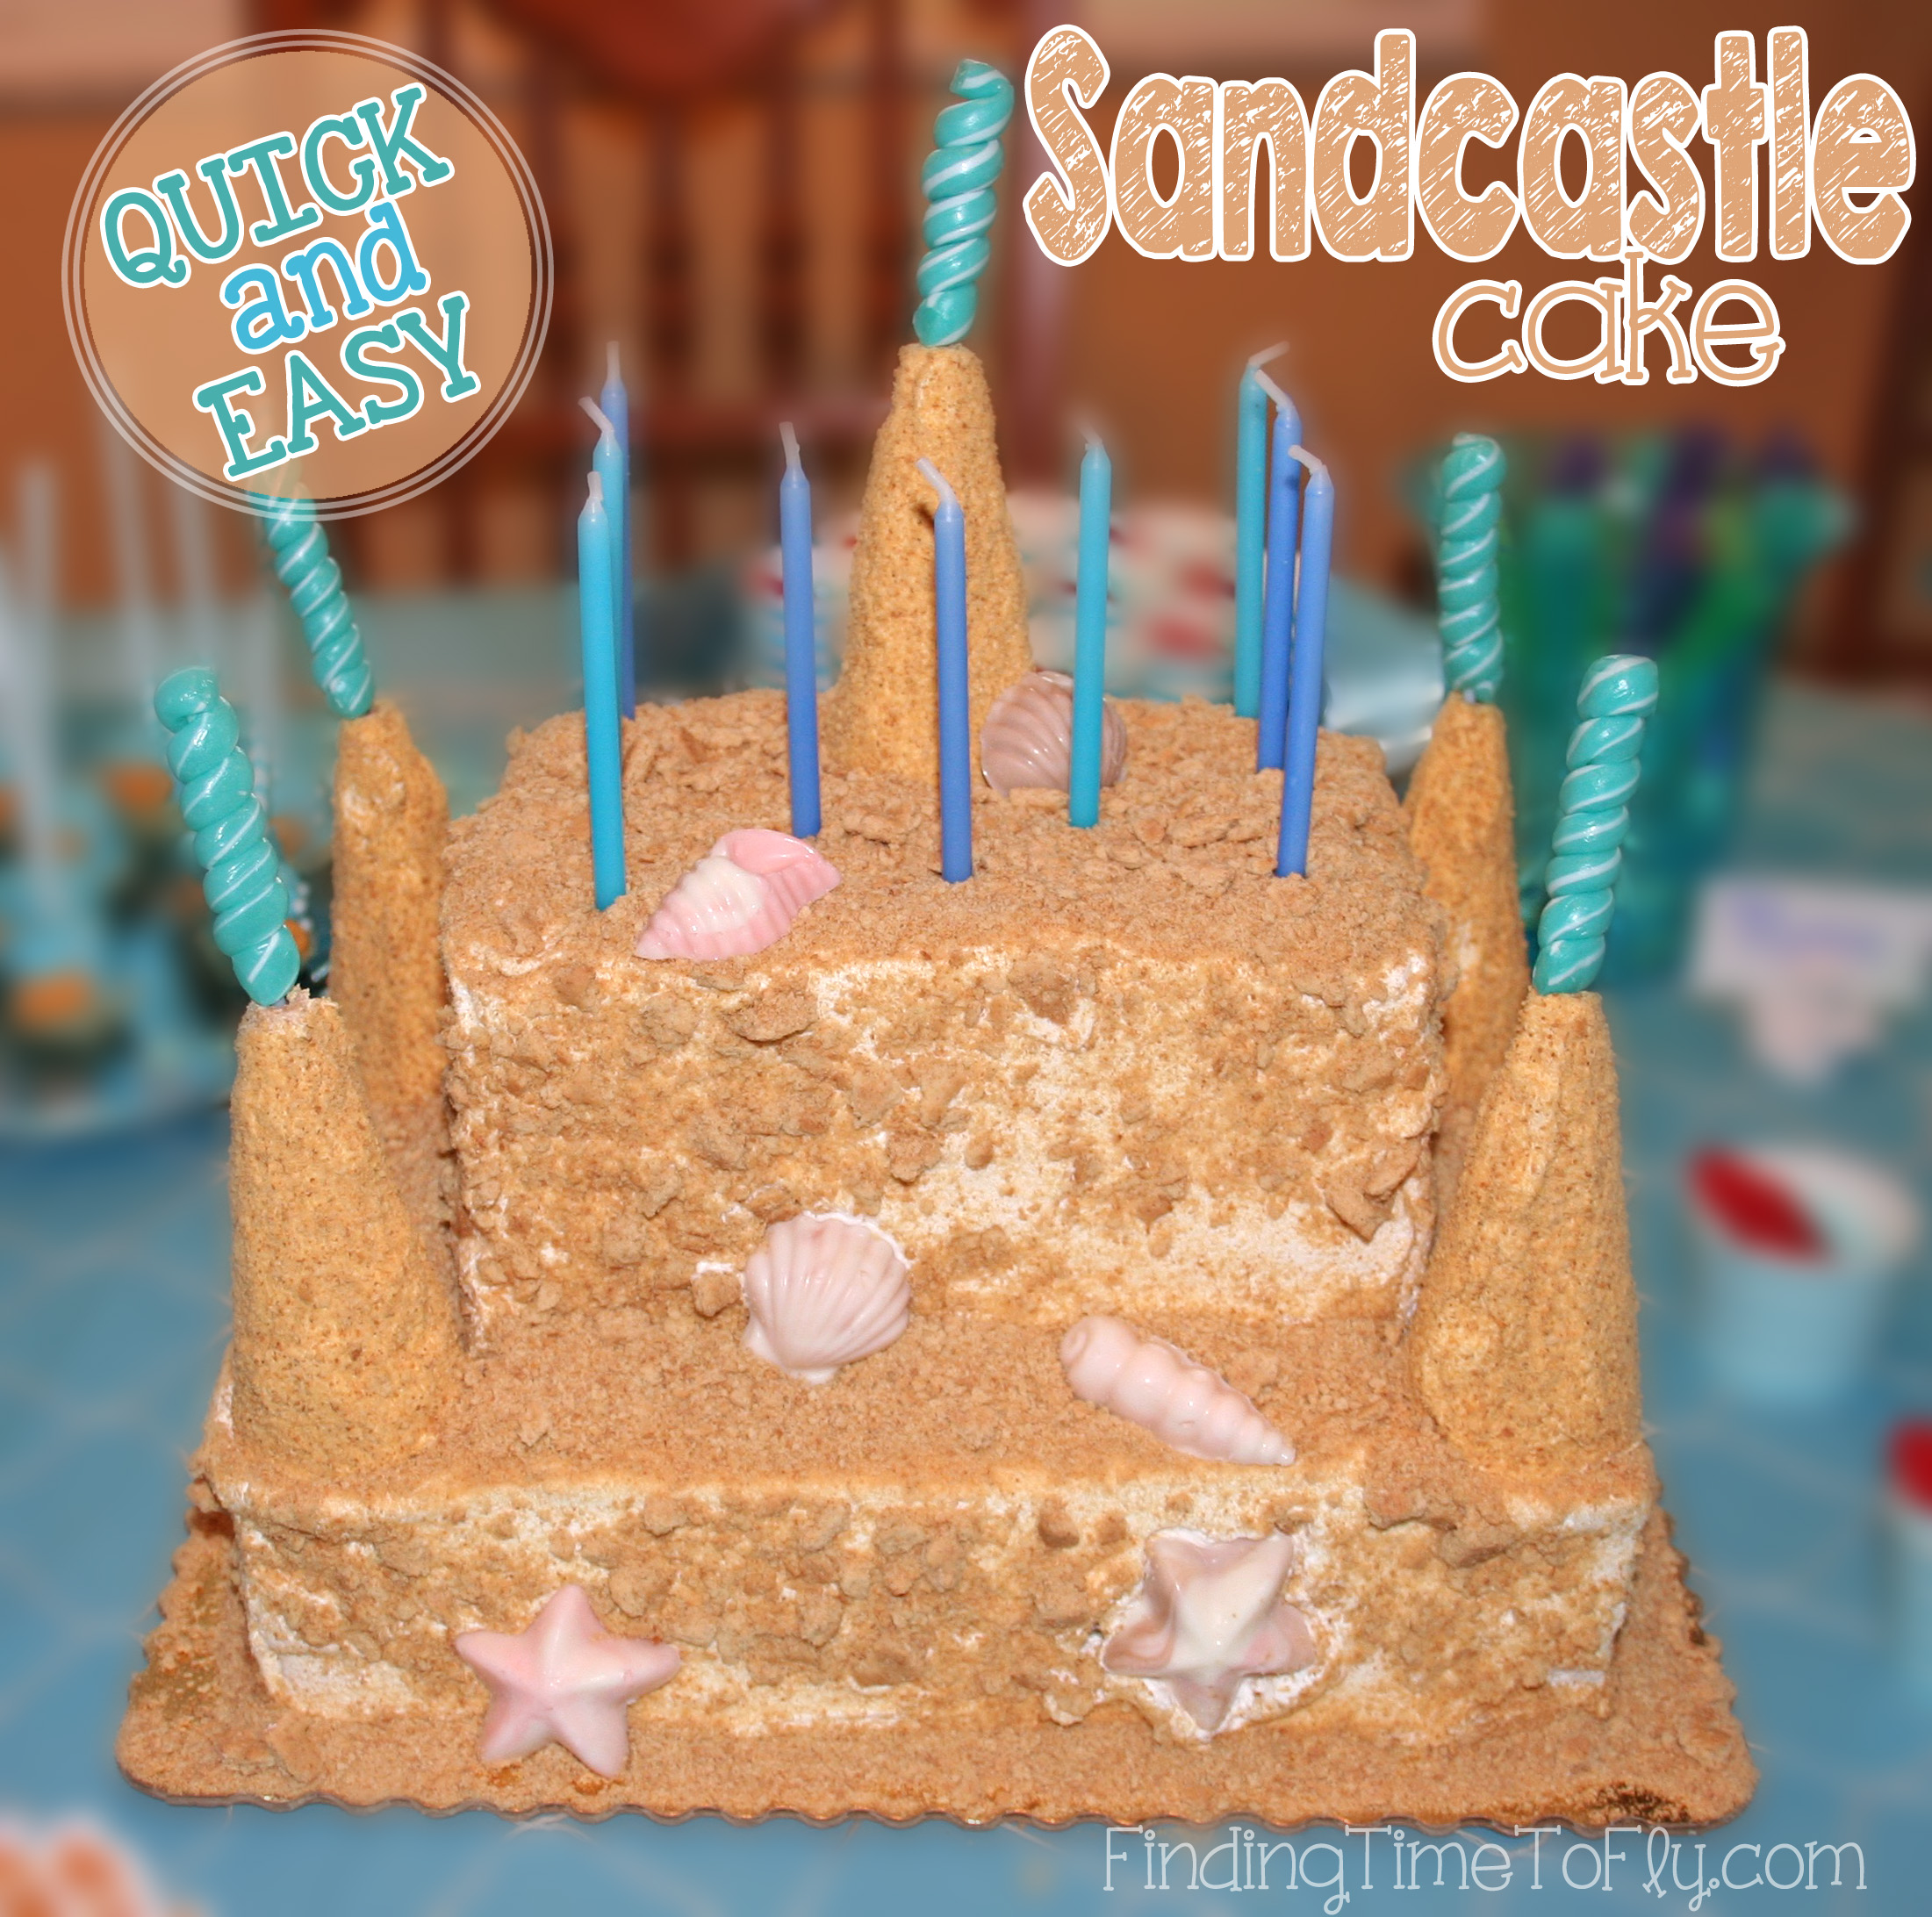 What a simple way to create a stunning Sandcastle Cake! I love this for a Mermaid or Under the Sea birthday party!